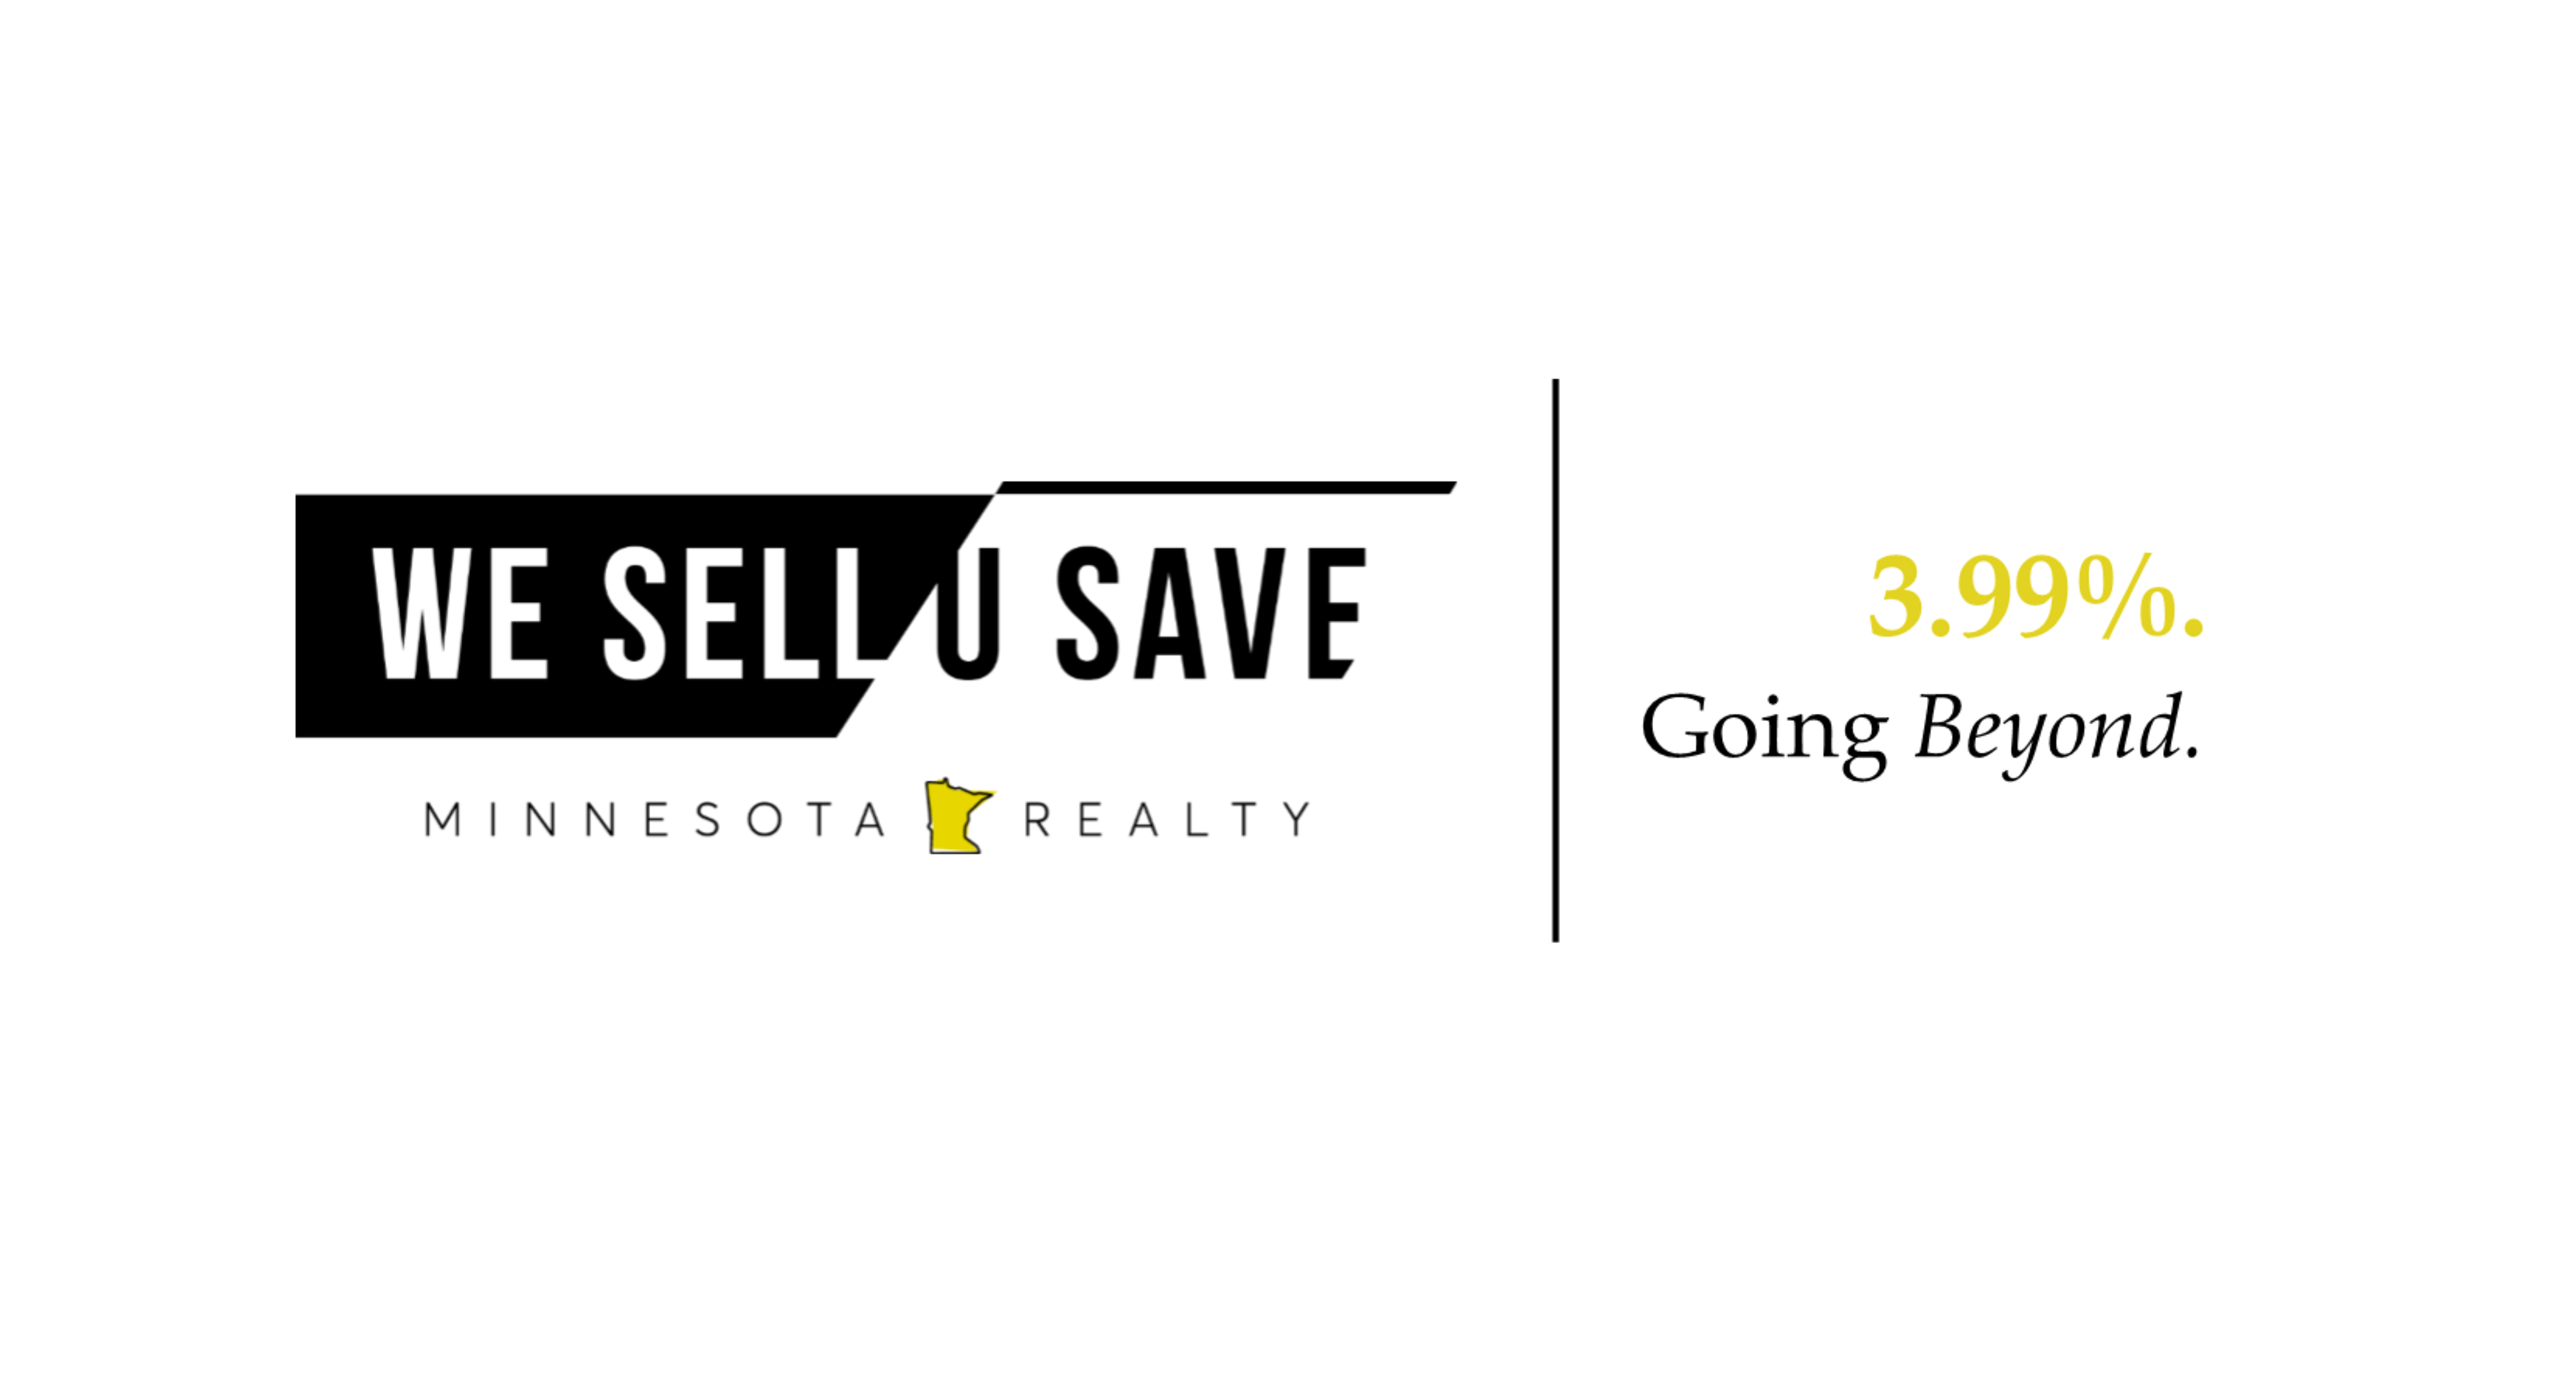 New look! We sell, YOU save. So much more, for so much less!